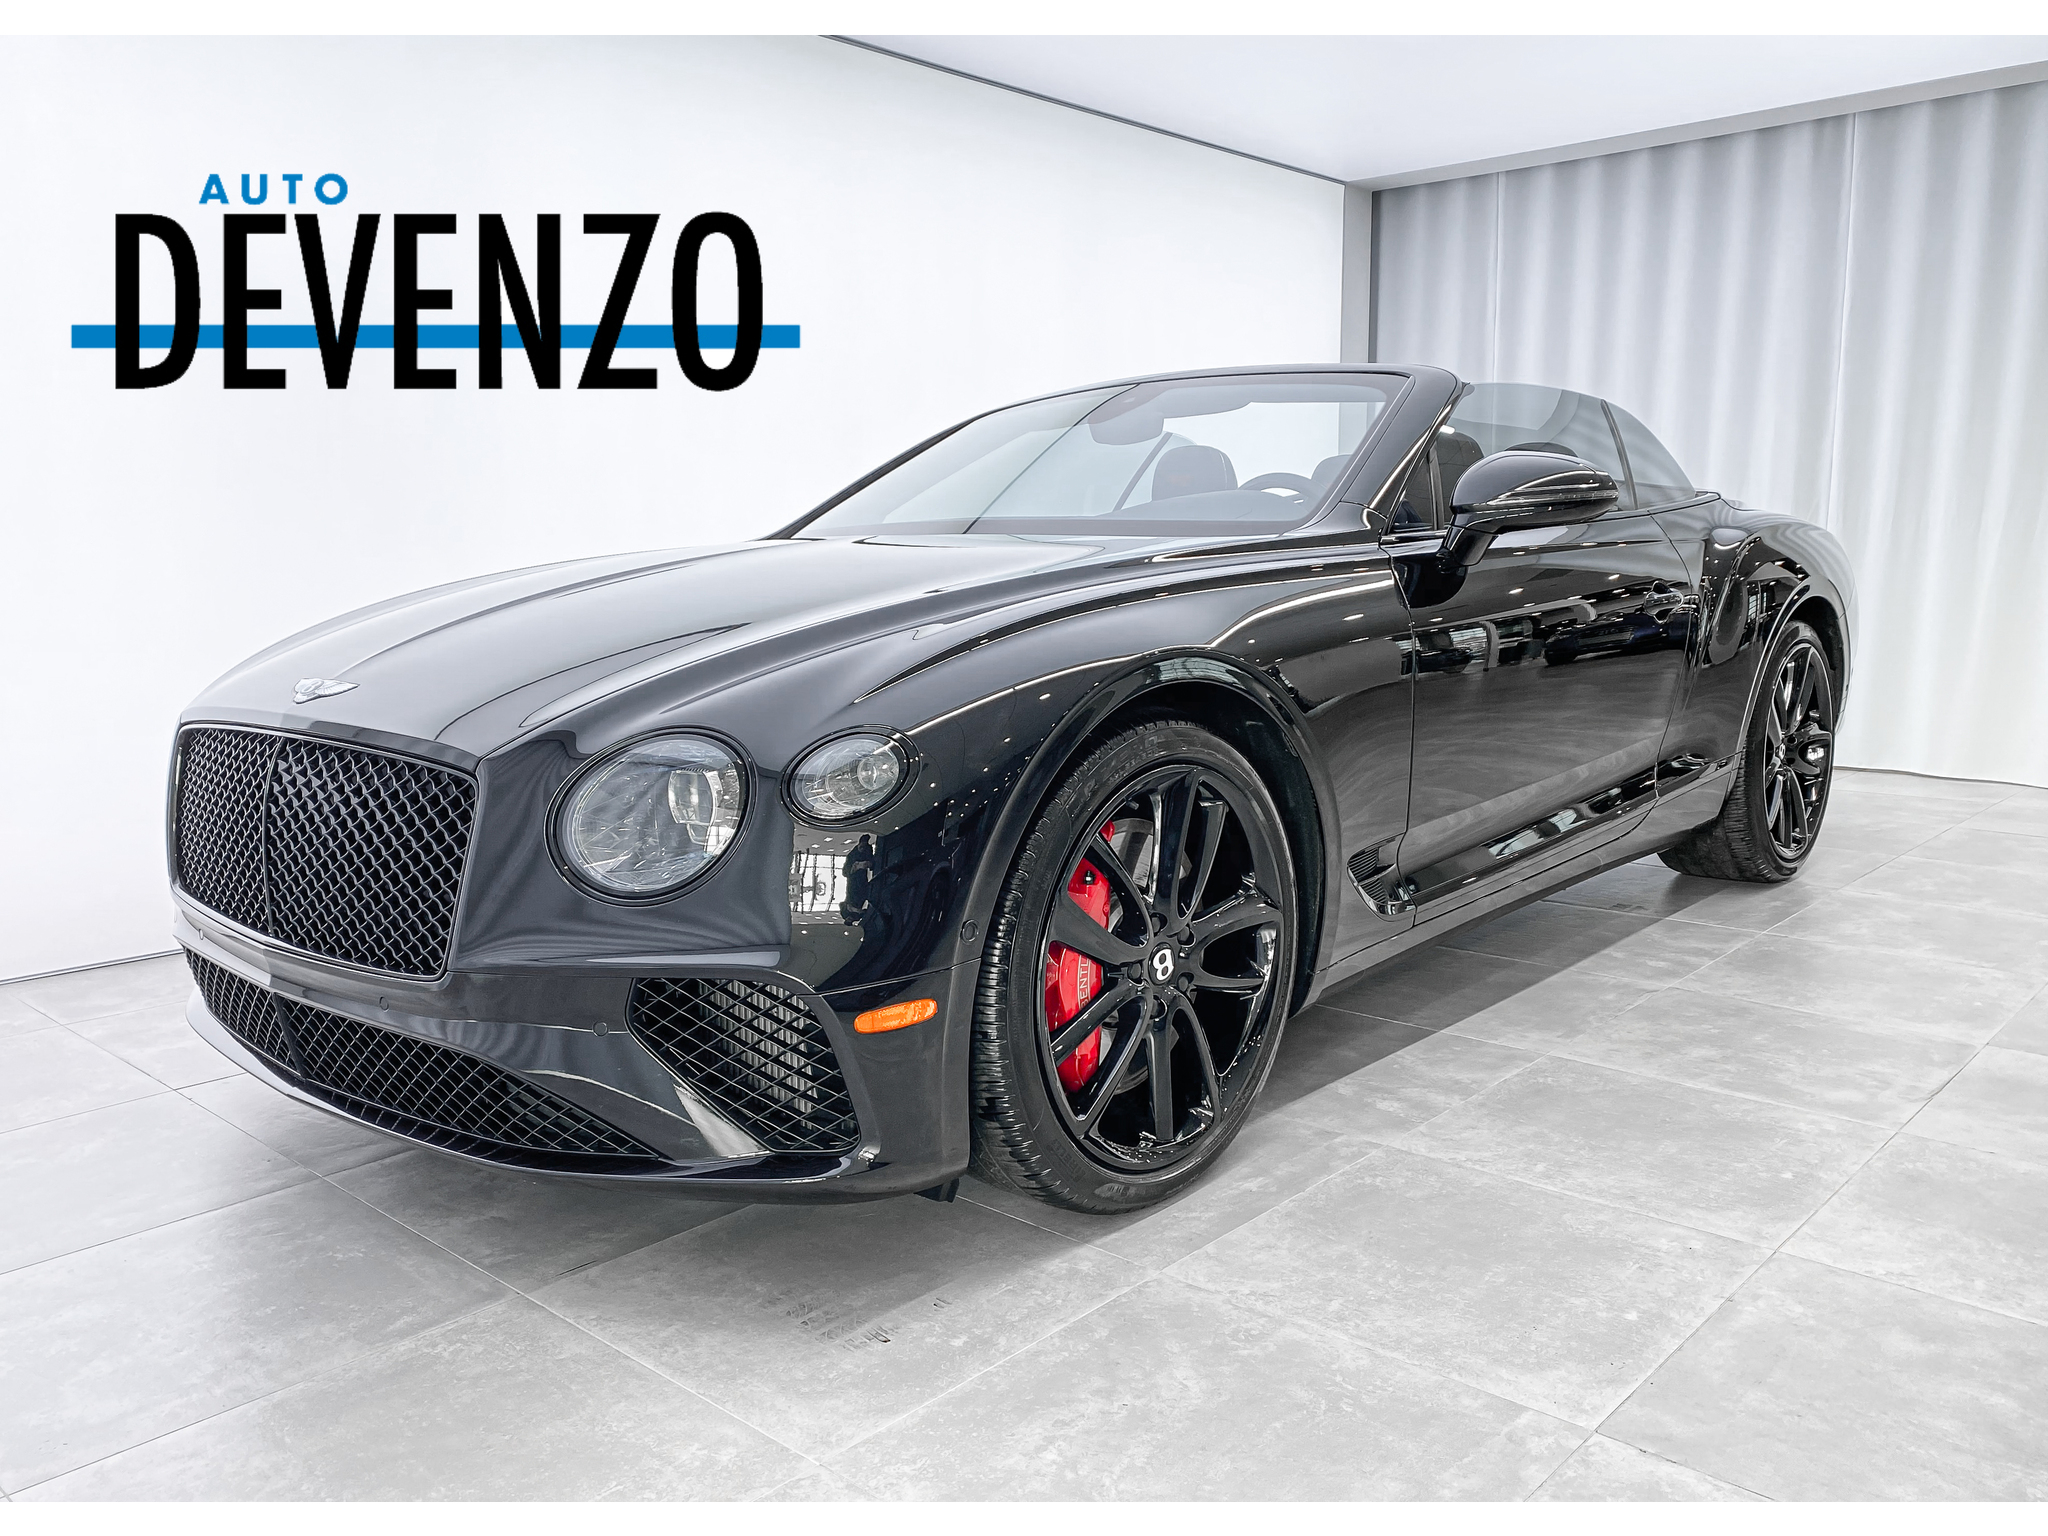 2020 Bentley Continental GT V8 Convertible 542HP AWD  Triple Black complet